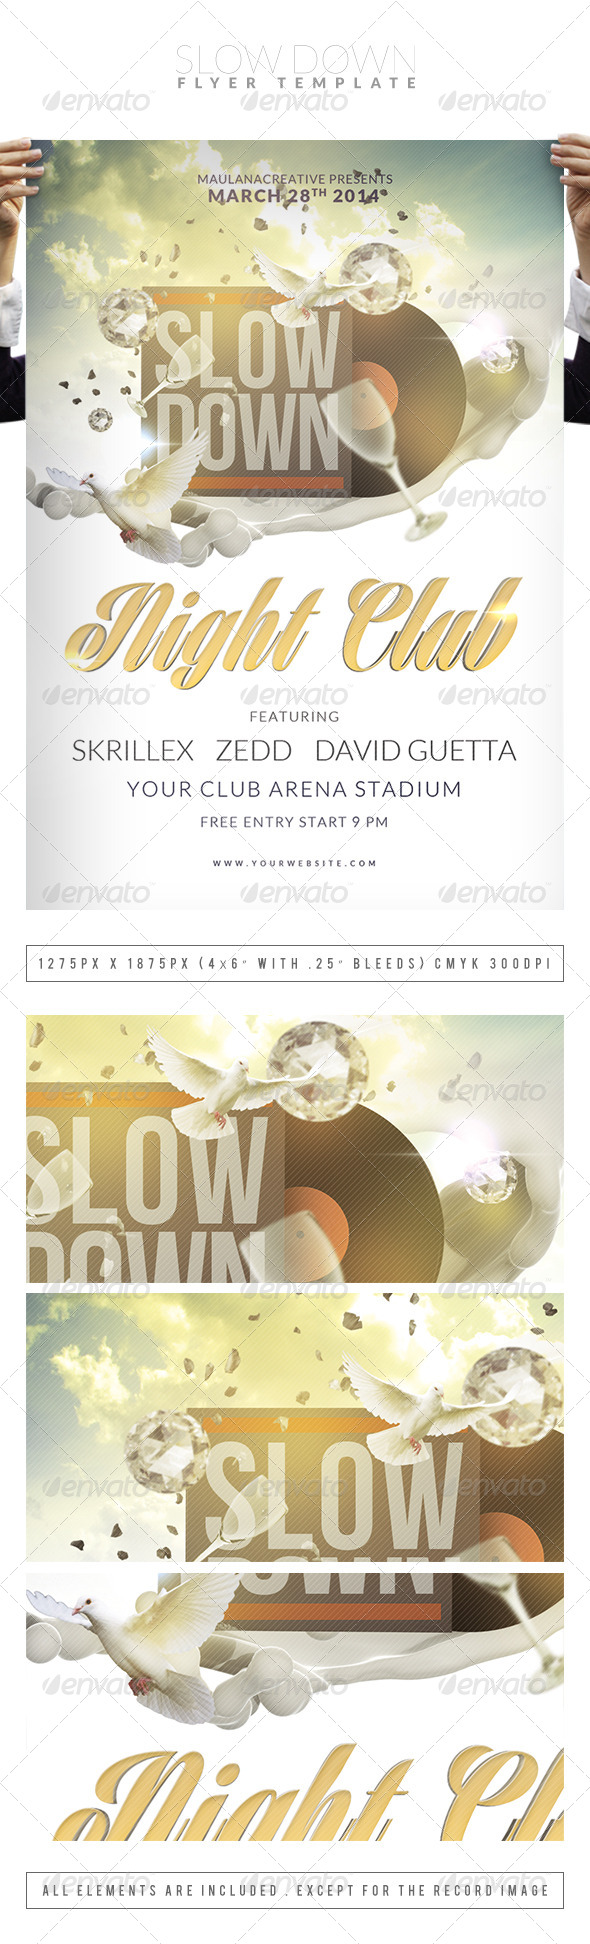 Slow Down Flyer Template - Clubs & Parties Events